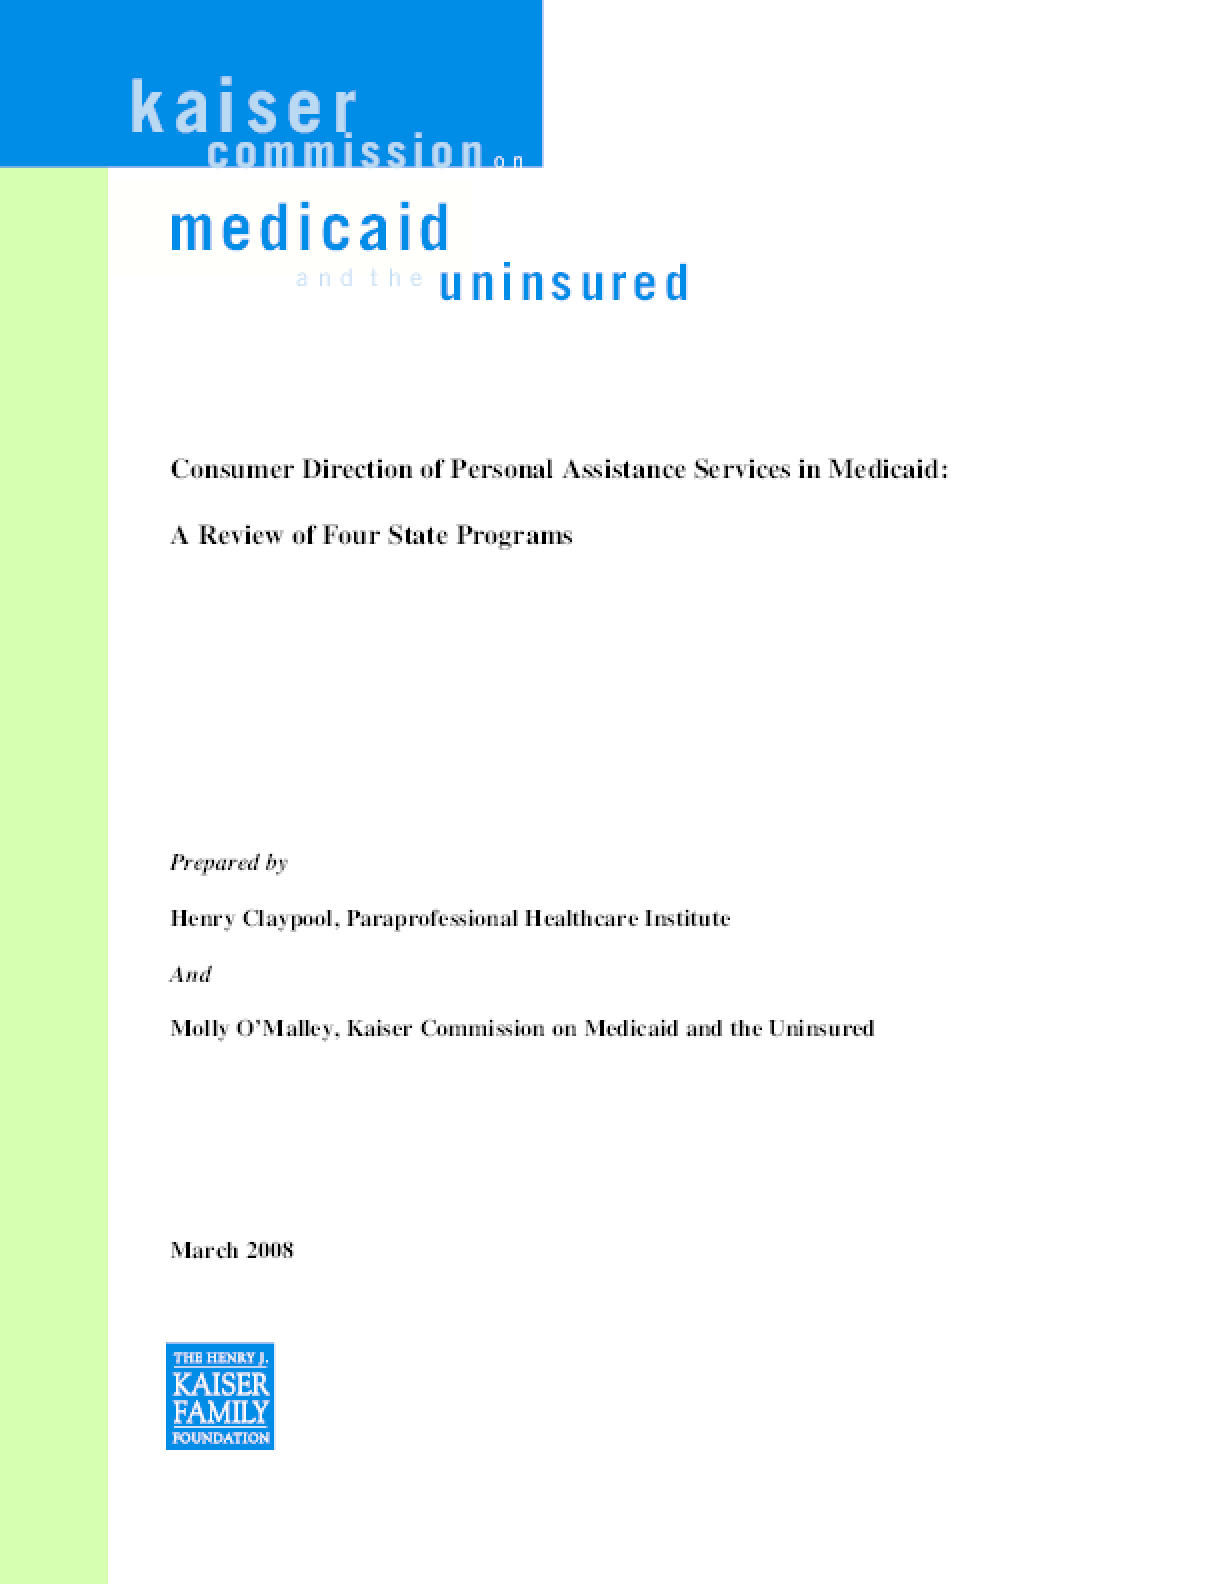 Consumer Direction of Personal Assistance Services in Medicaid: A Review of Four State Programs